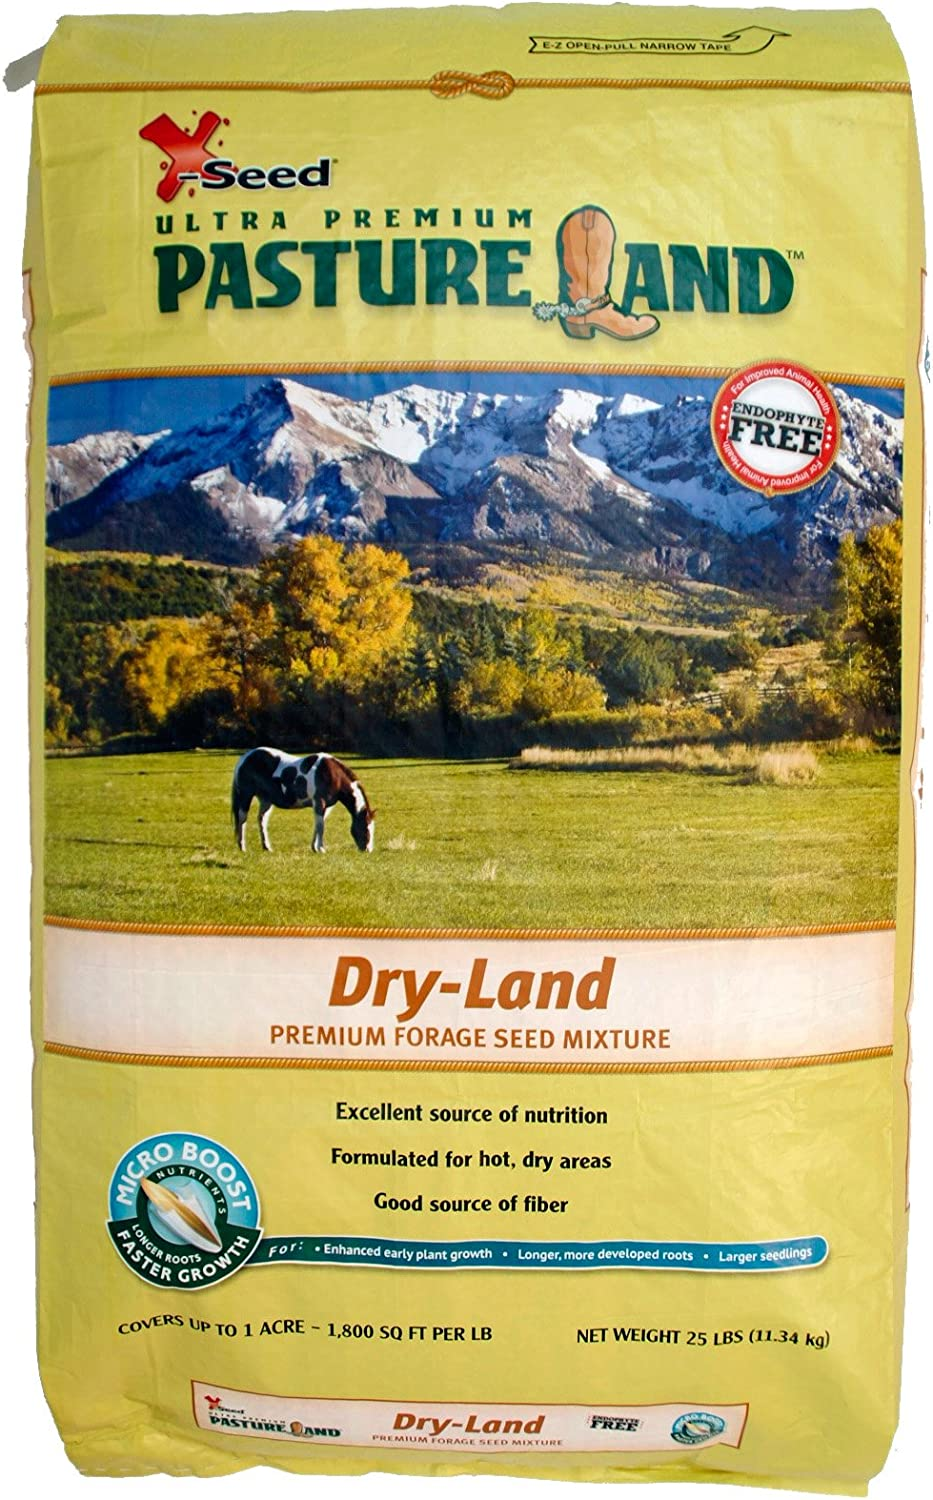 25-Pound X-Seed 440FS0010UCT185 Dry-Land Mixture Pasture Forage Seed